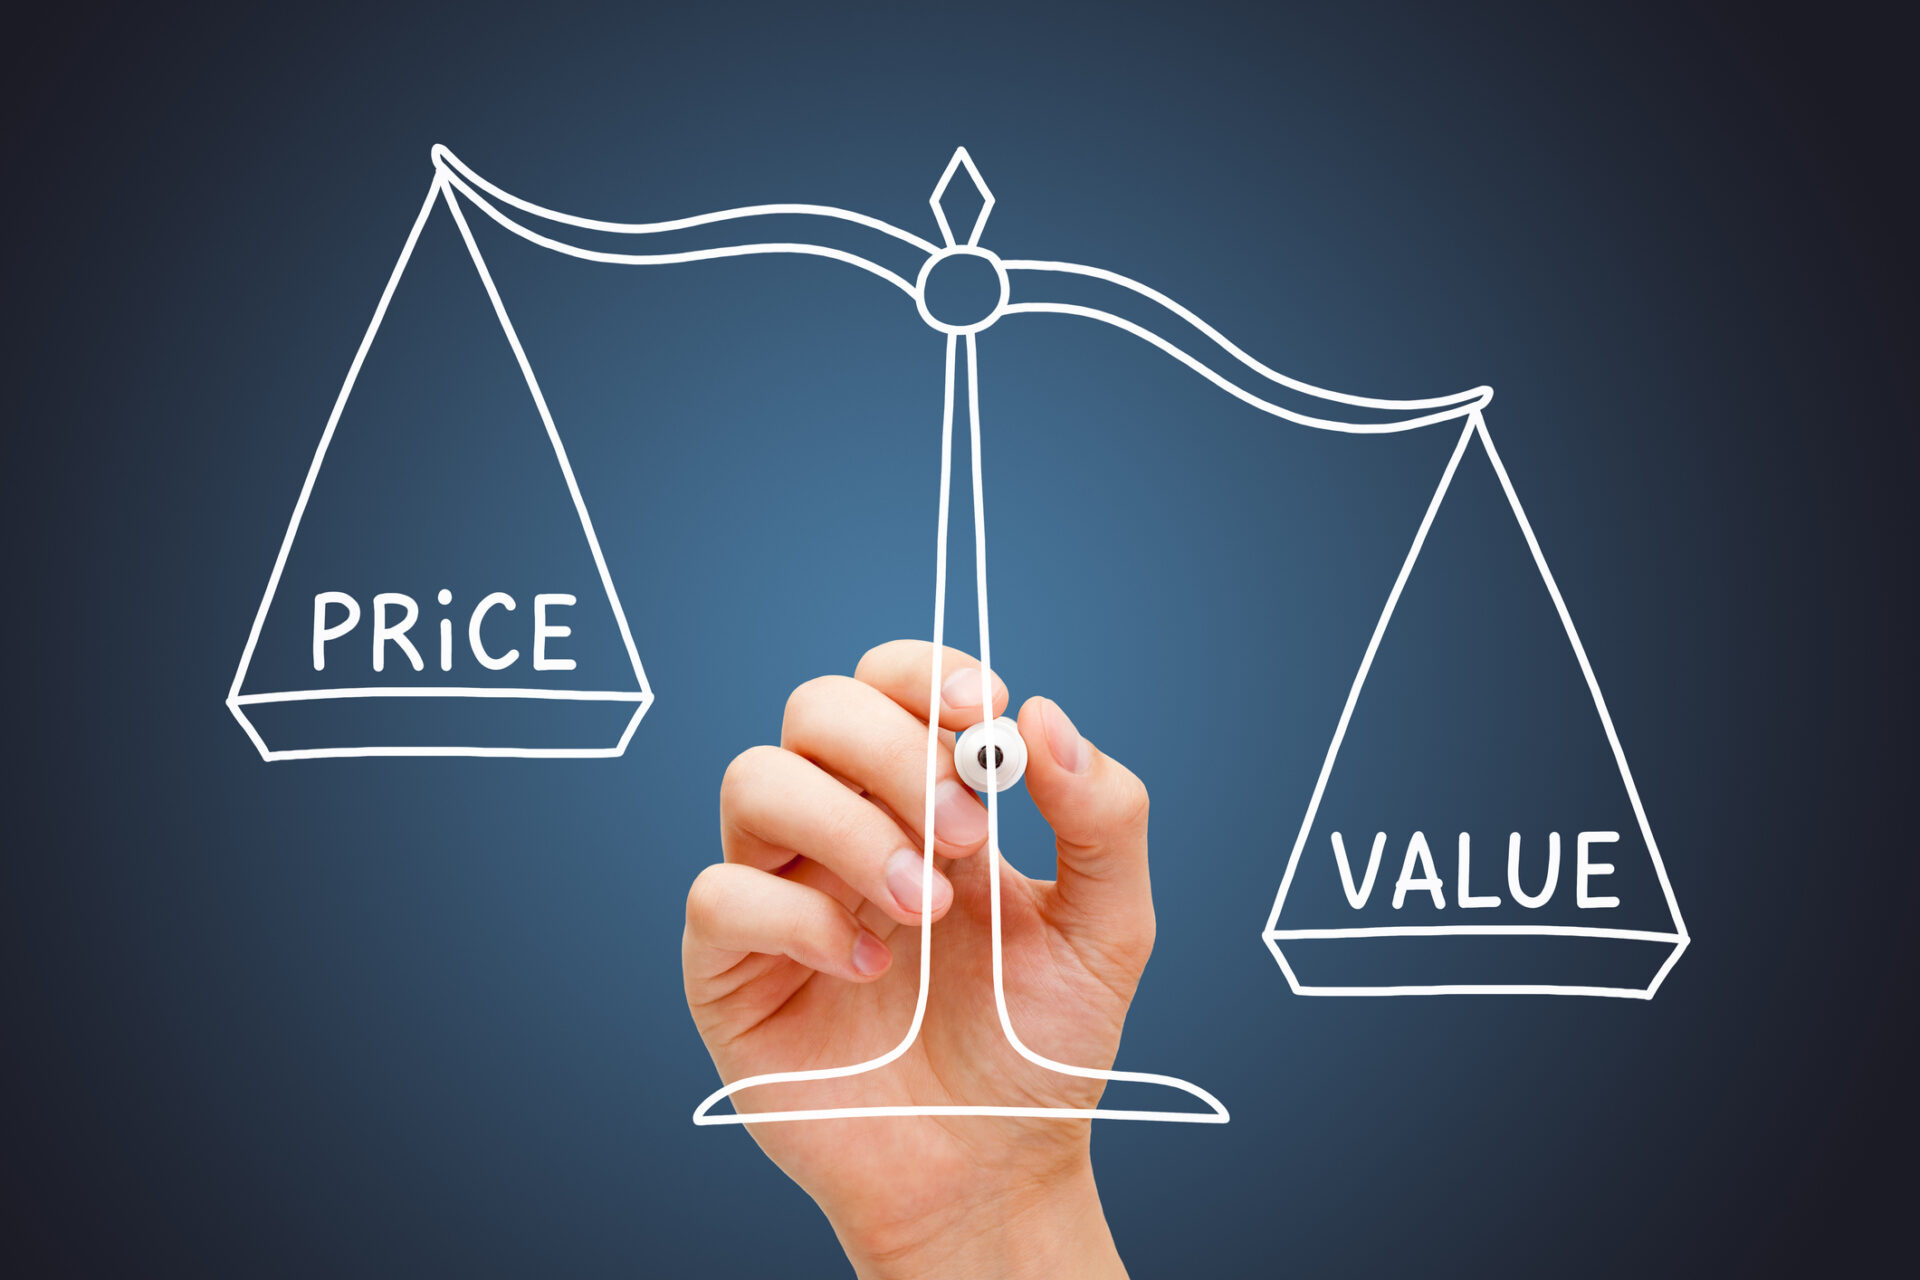 Value Price Scale Business Concept